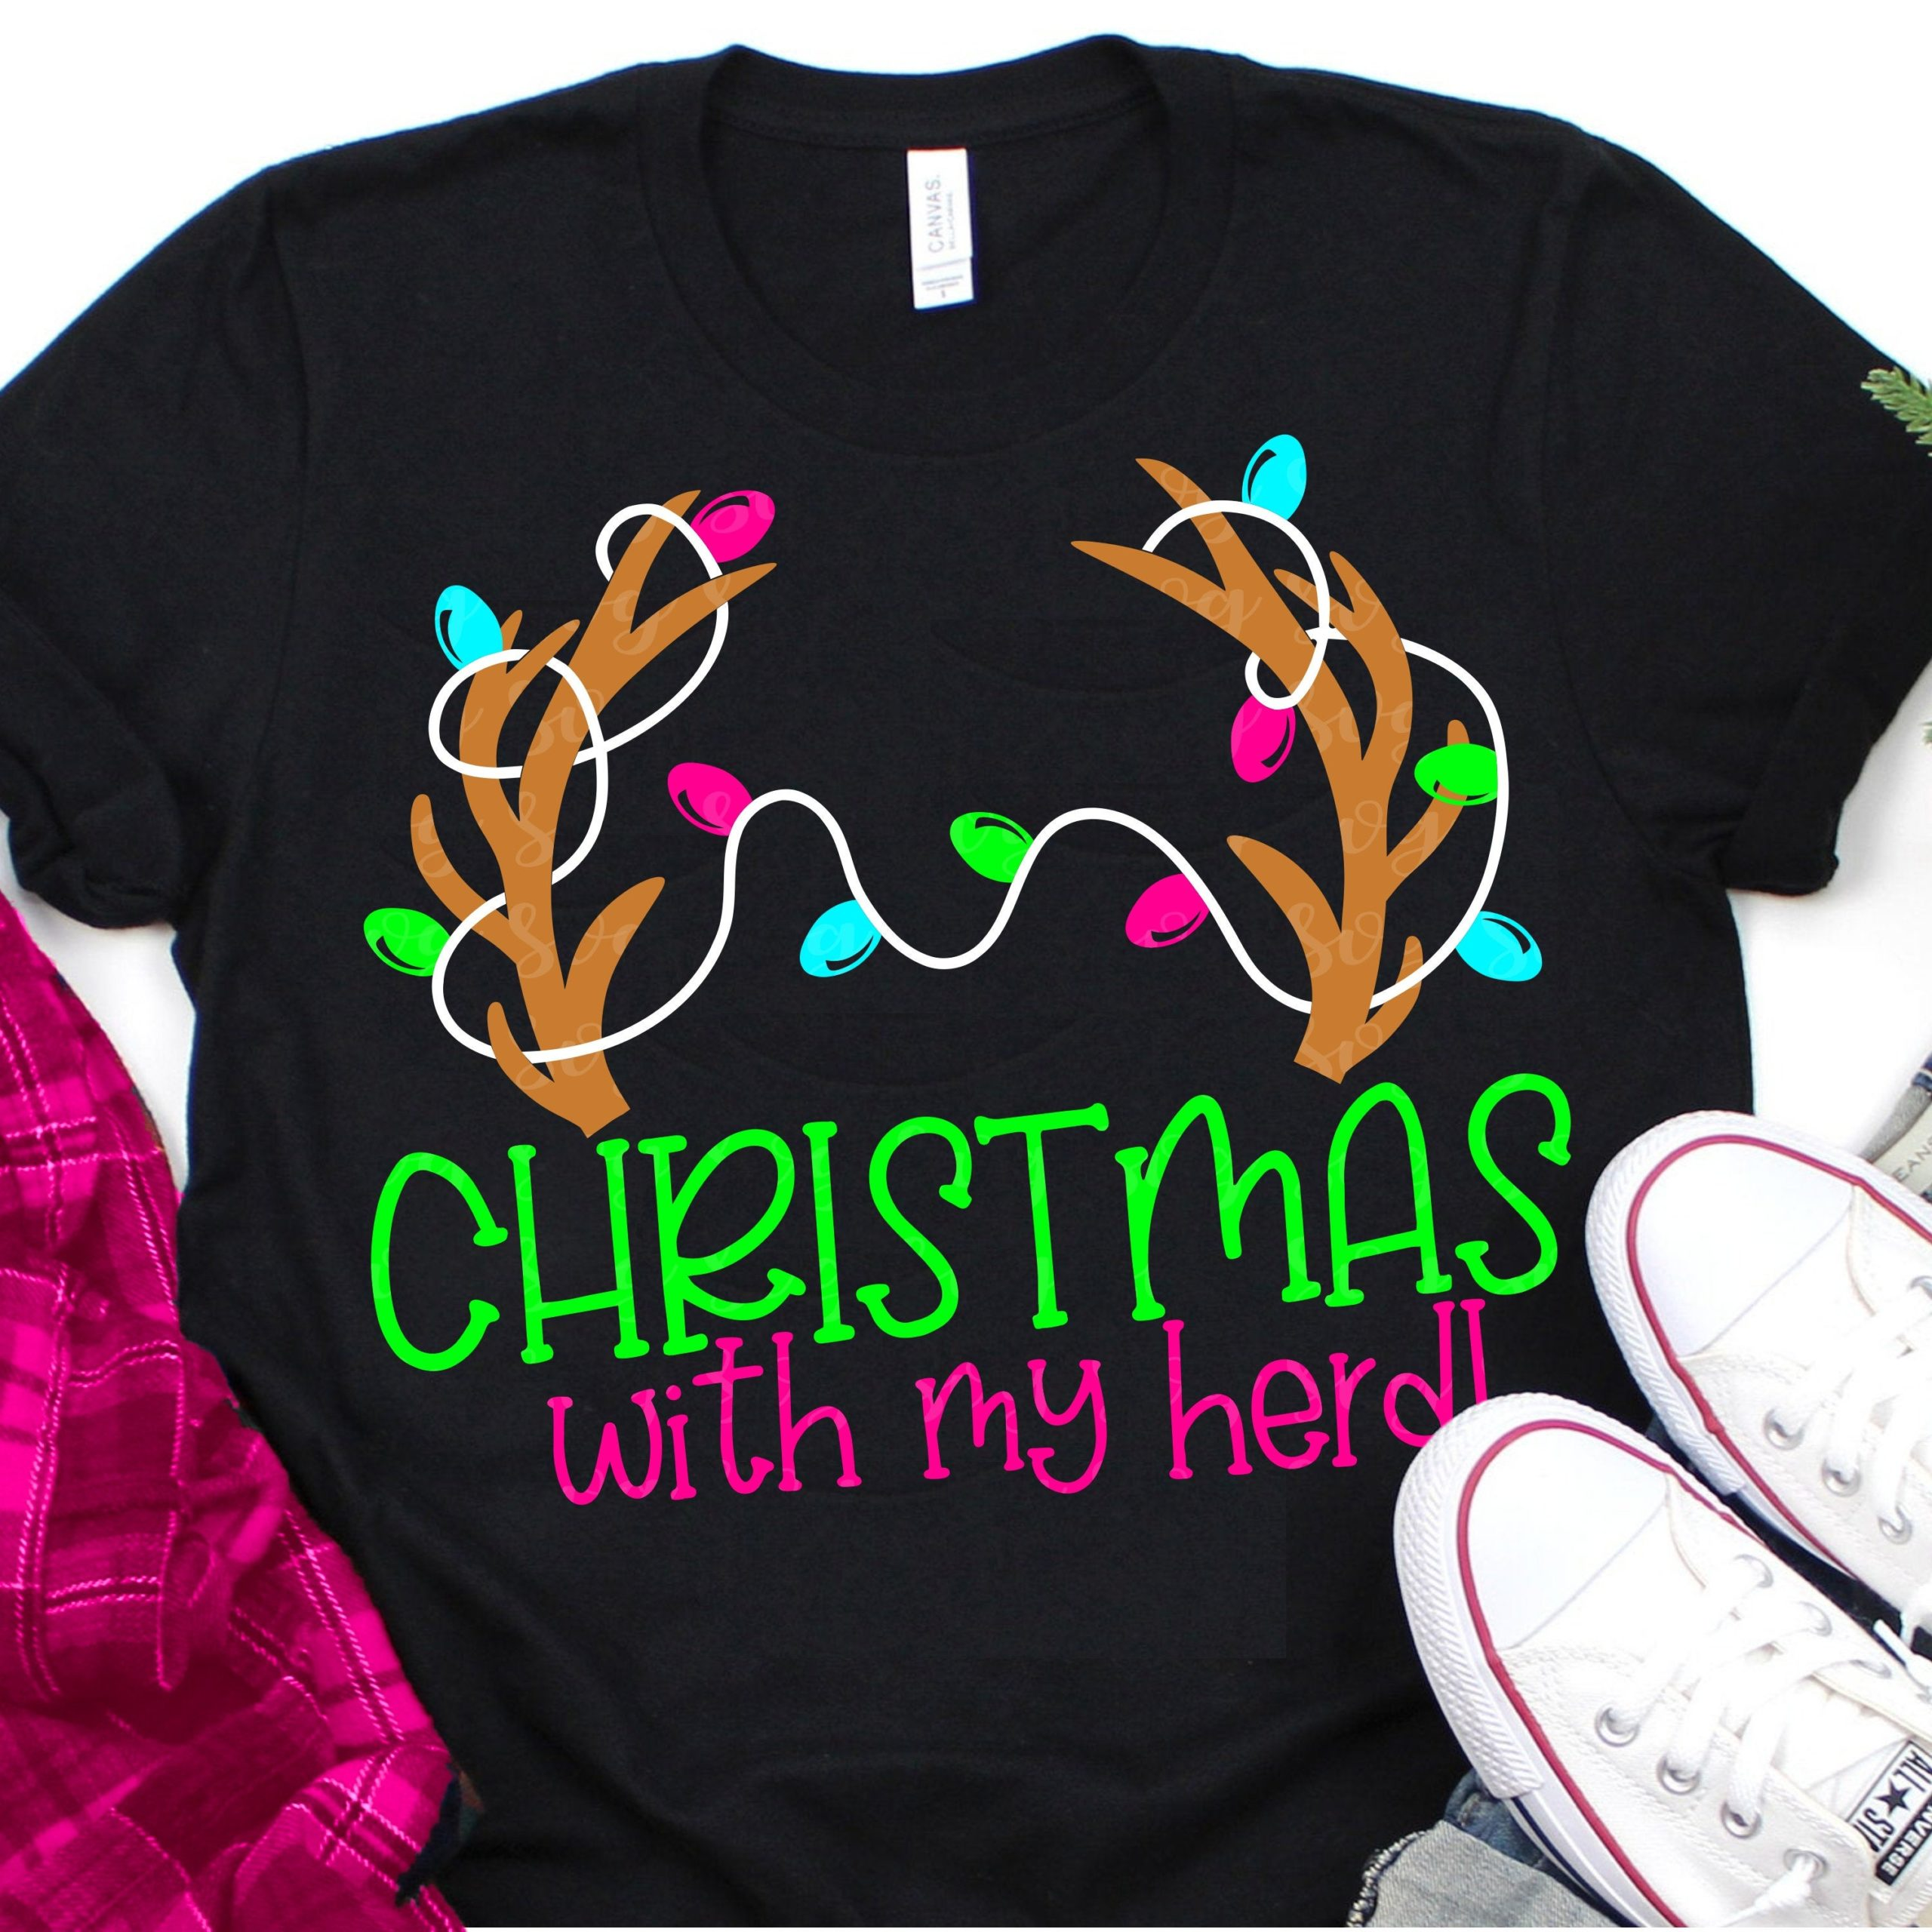 Christmas With My Herd Svg Antler With Lights Svg Christmas Svg Matching Family Svg Design Family Christmas Svg Svg For Cricut Antler Svg Svg For Cricut